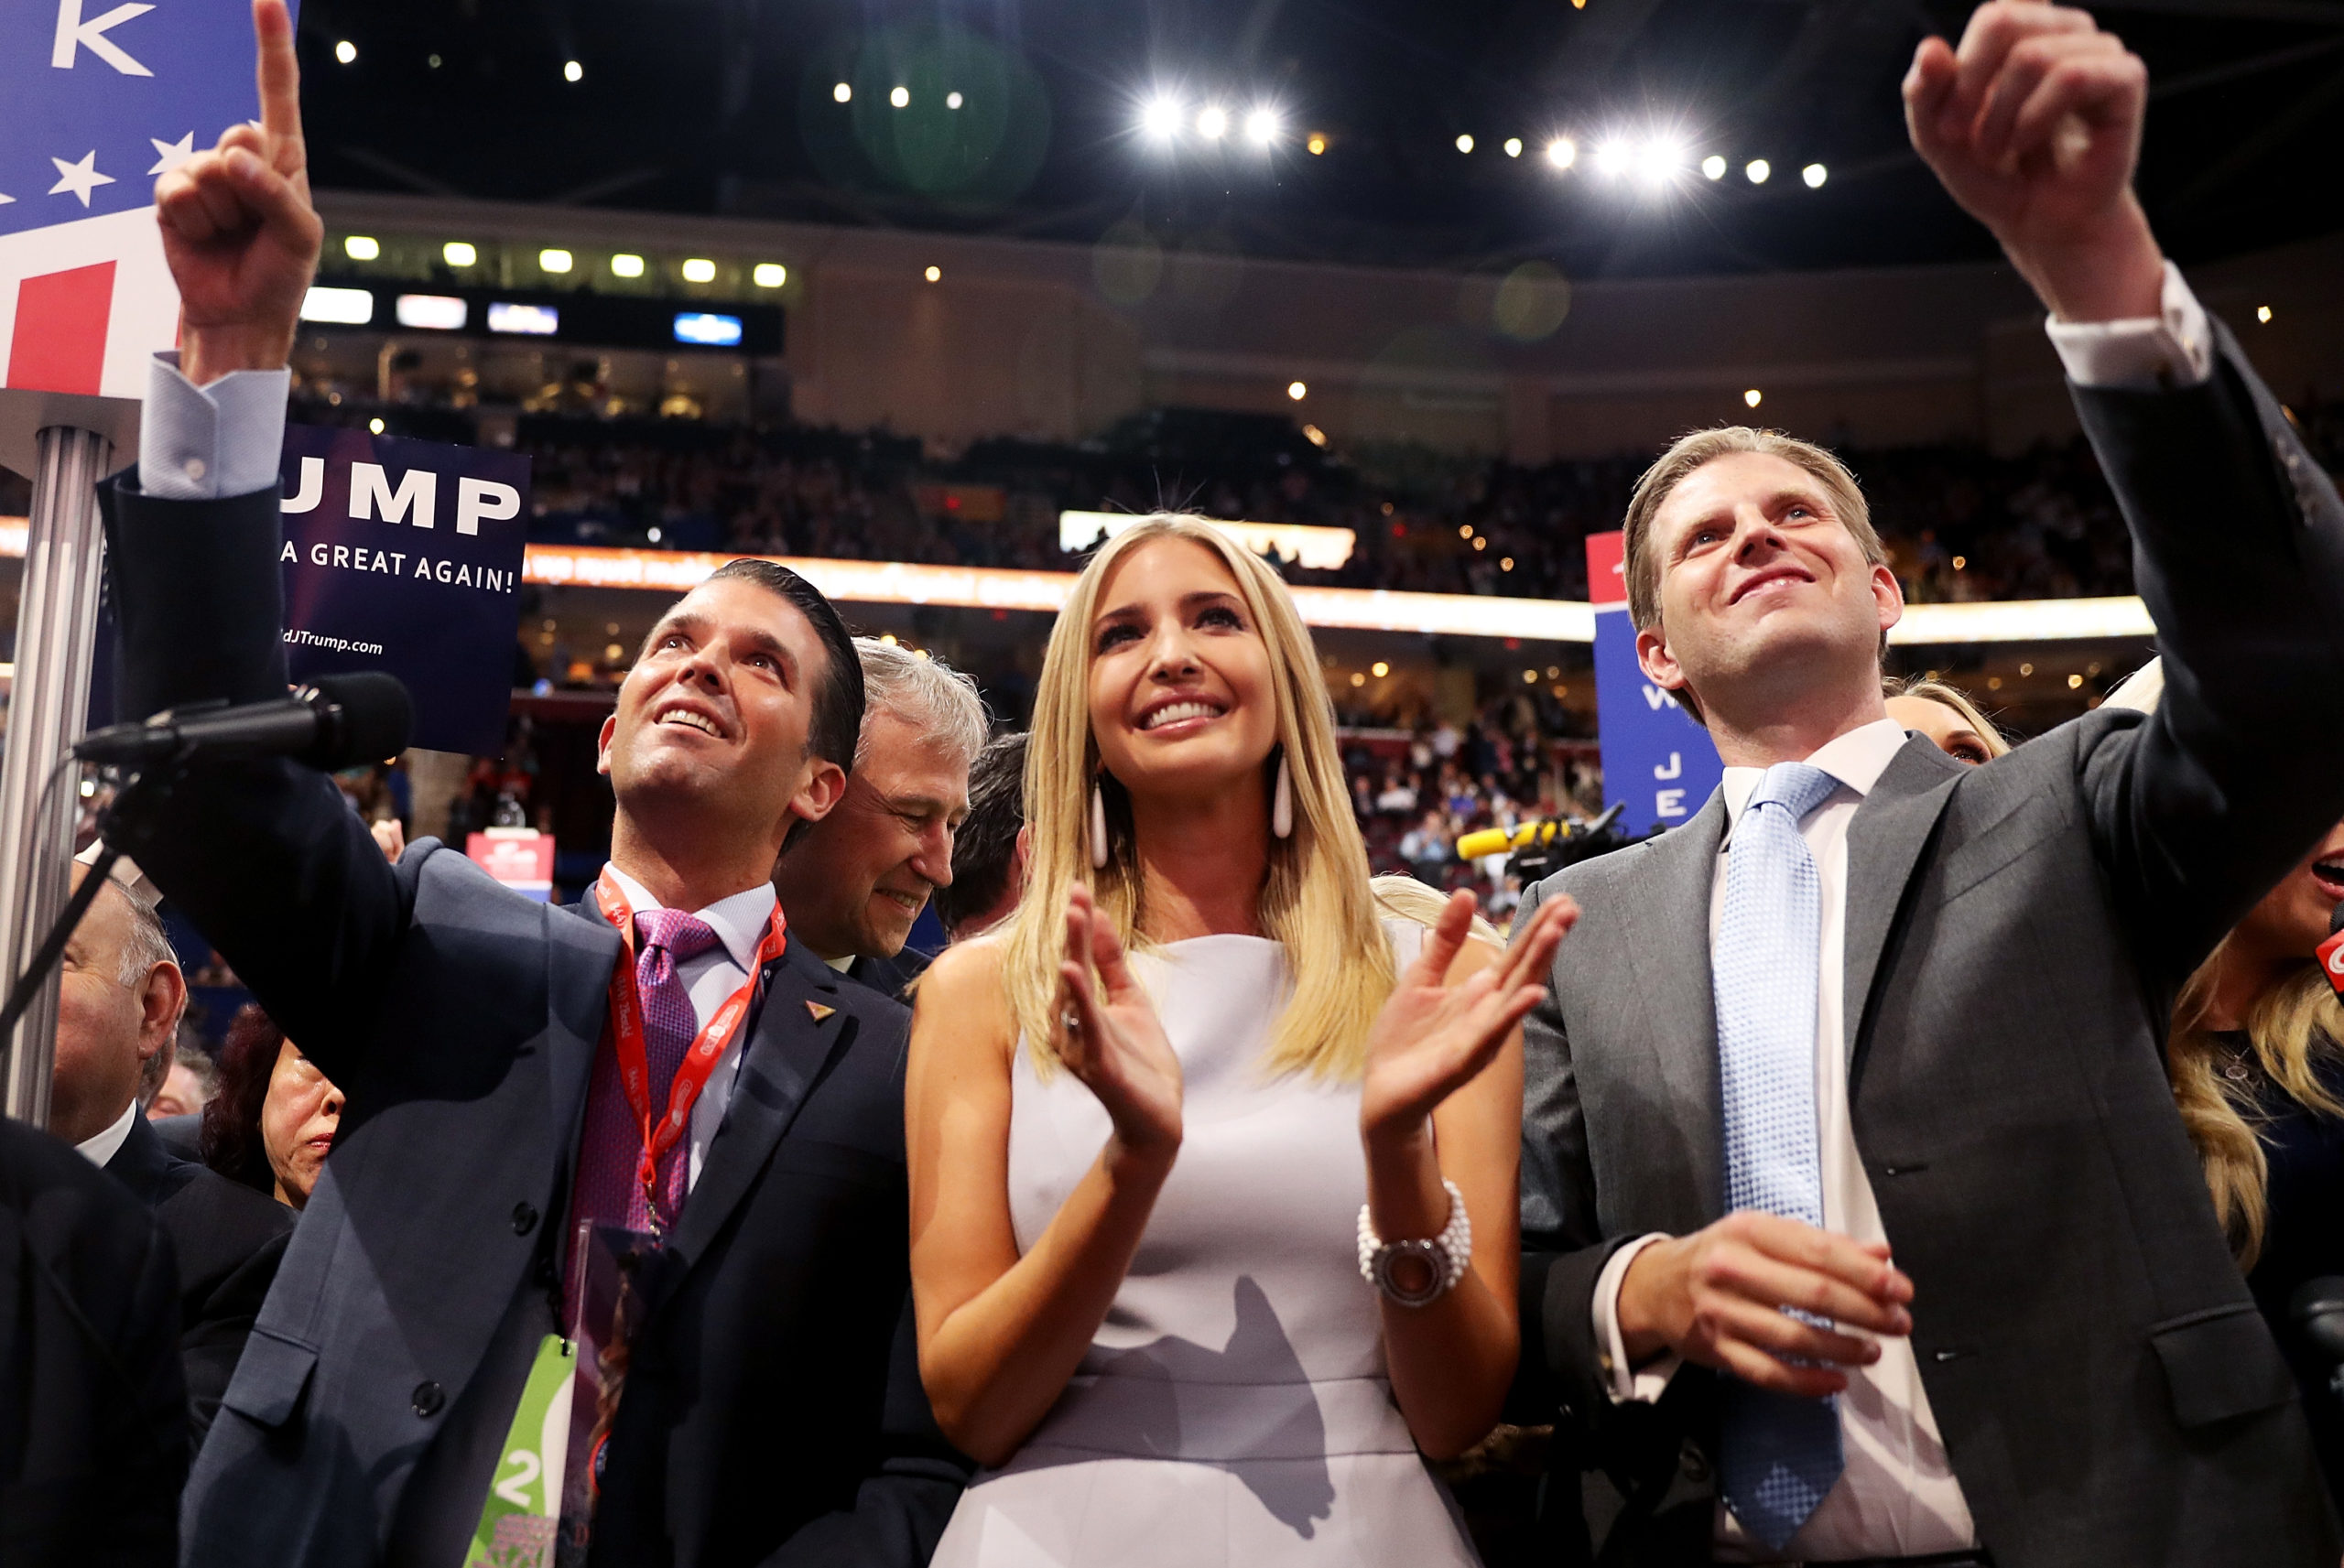 Donald Trump Jr. (L), along with Ivanka Trump (C) and Eric Trump (R), take part in the roll call in support of Republican presidential candidate Donald Trump on the second day of the Republican National Convention on July 19, 2016 at the Quicken Loans Arena in Cleveland, Ohio. (Joe Raedle/Getty Images)